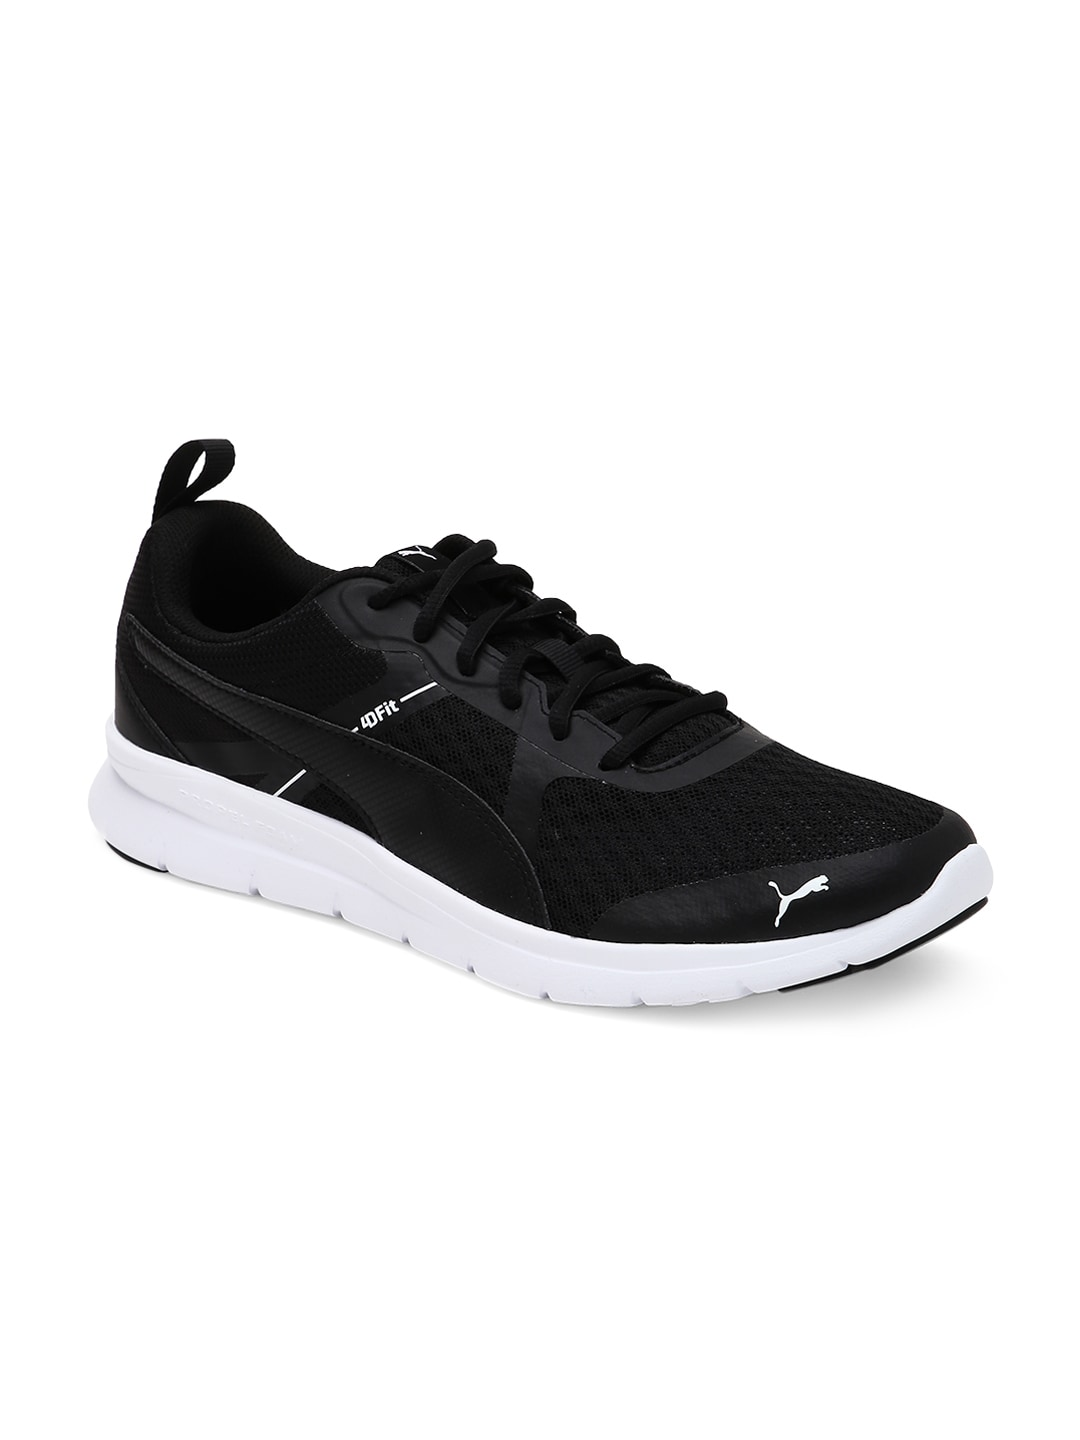 Menamp; for Online in India Shoes Shoes Buy Women Puma Puma XTwiukZPO